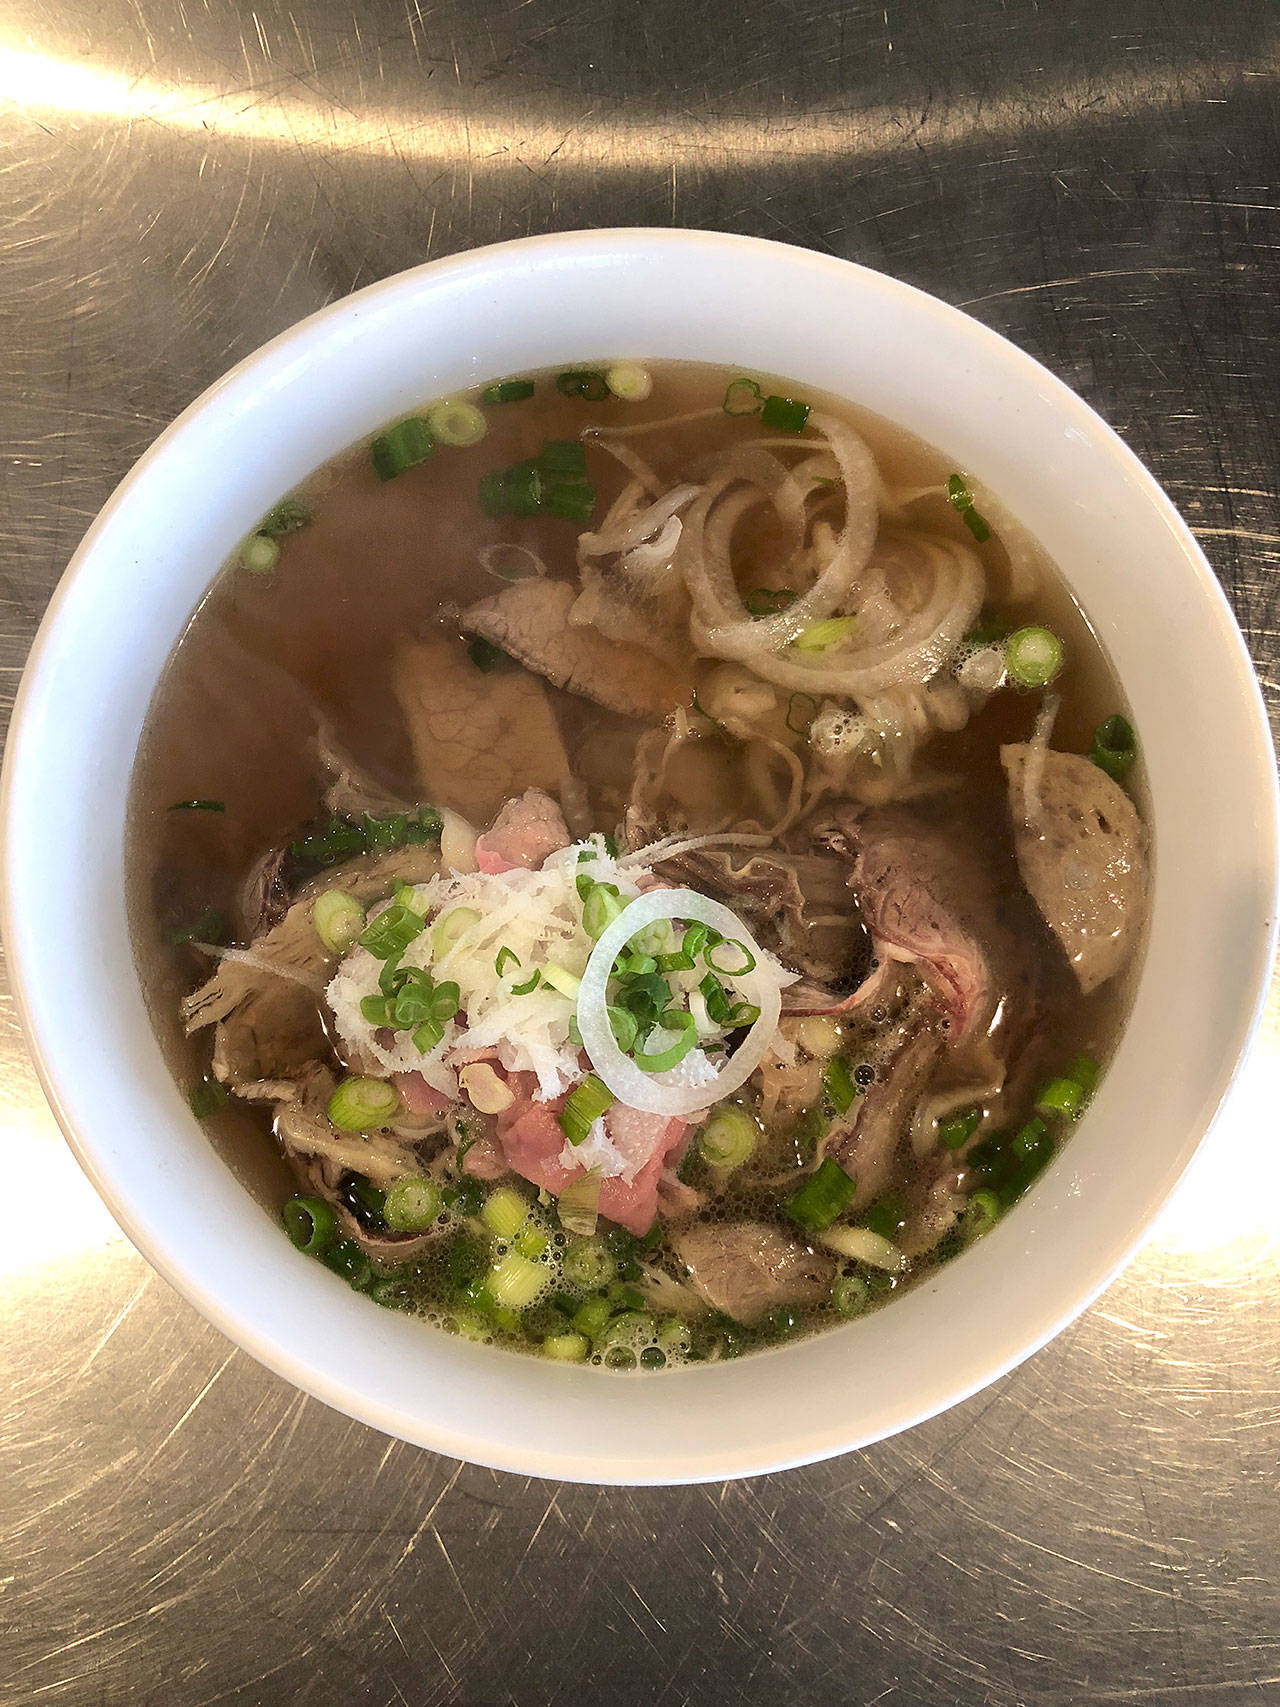 Basil's special meat-lovers pho, called dac biet, has steak, flank, brisket, tendon, tripe and Vietnamese beef balls. (Andrew Pham)